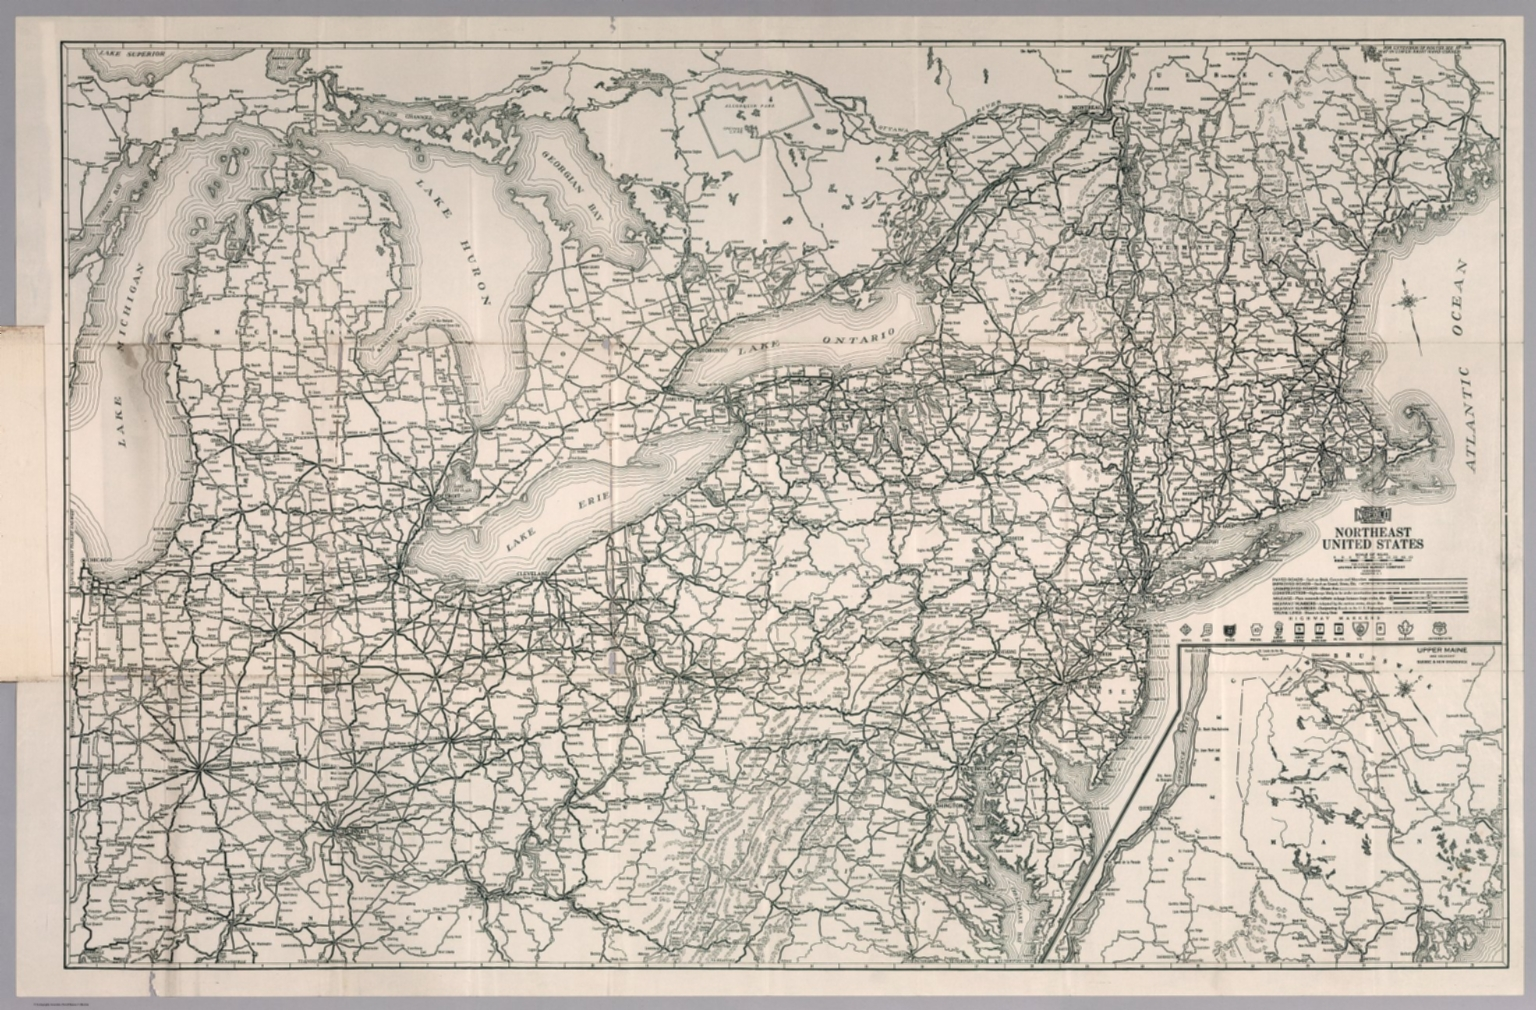 Picture of: Nufold Road Guide Northeast United States David Rumsey Historical Map Collection